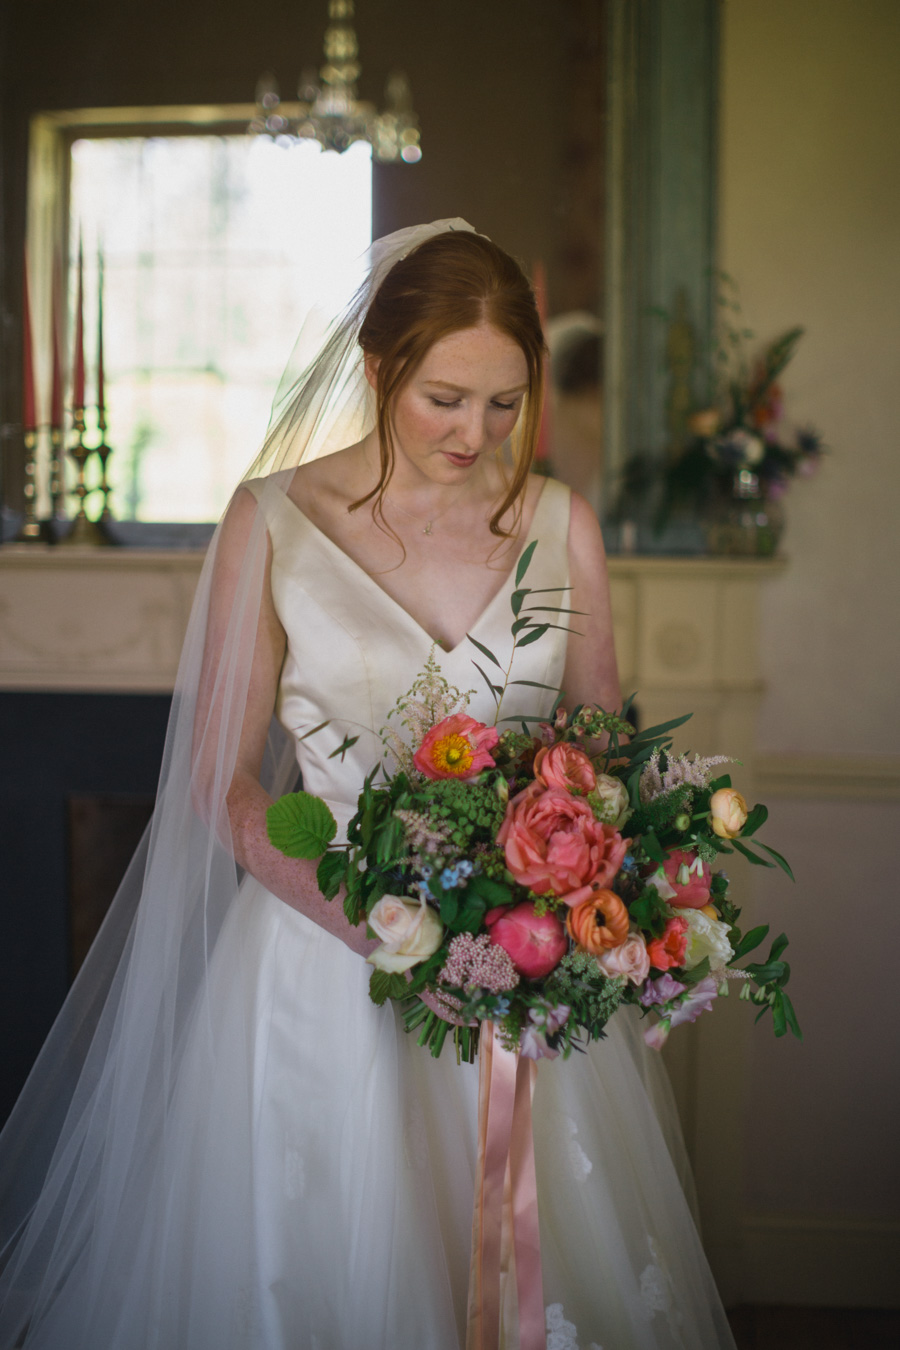 Divine wedding styling with English country garden florals at Pauntley Court, photo credit Red Maple Photography (8)